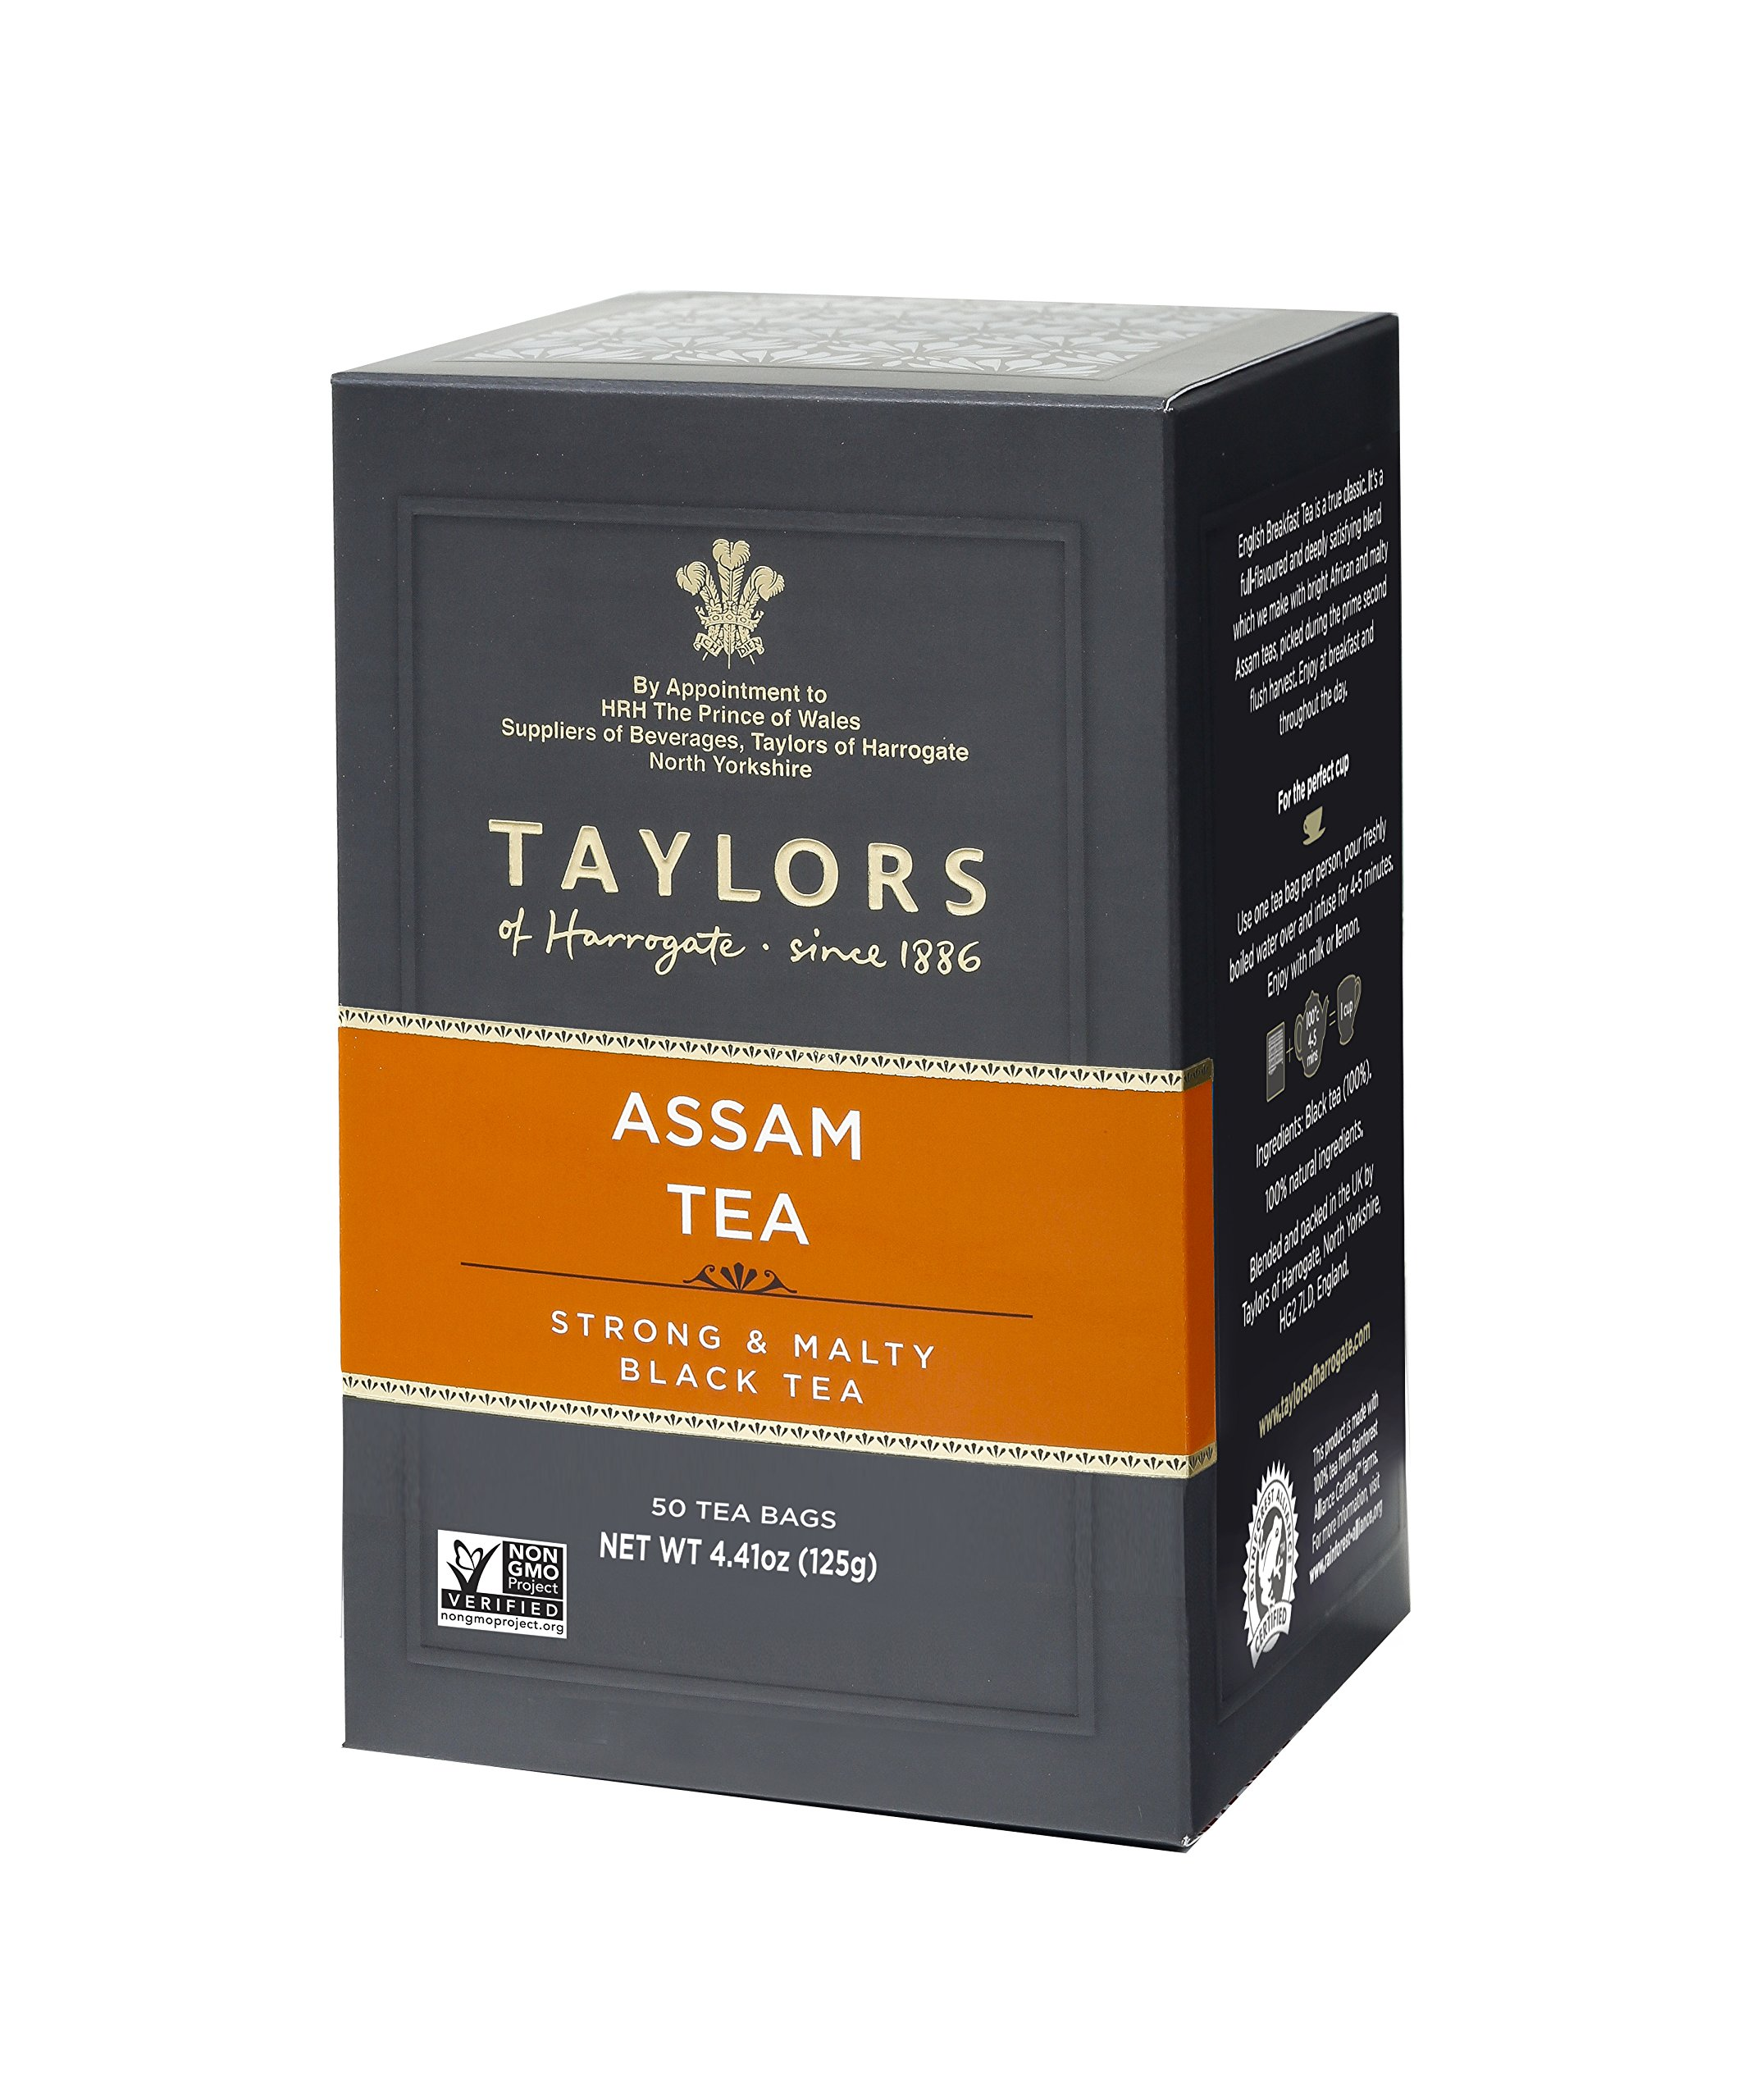 Taylors of Harrogate Pure Assam, 50 Teabags, Pack of 6)